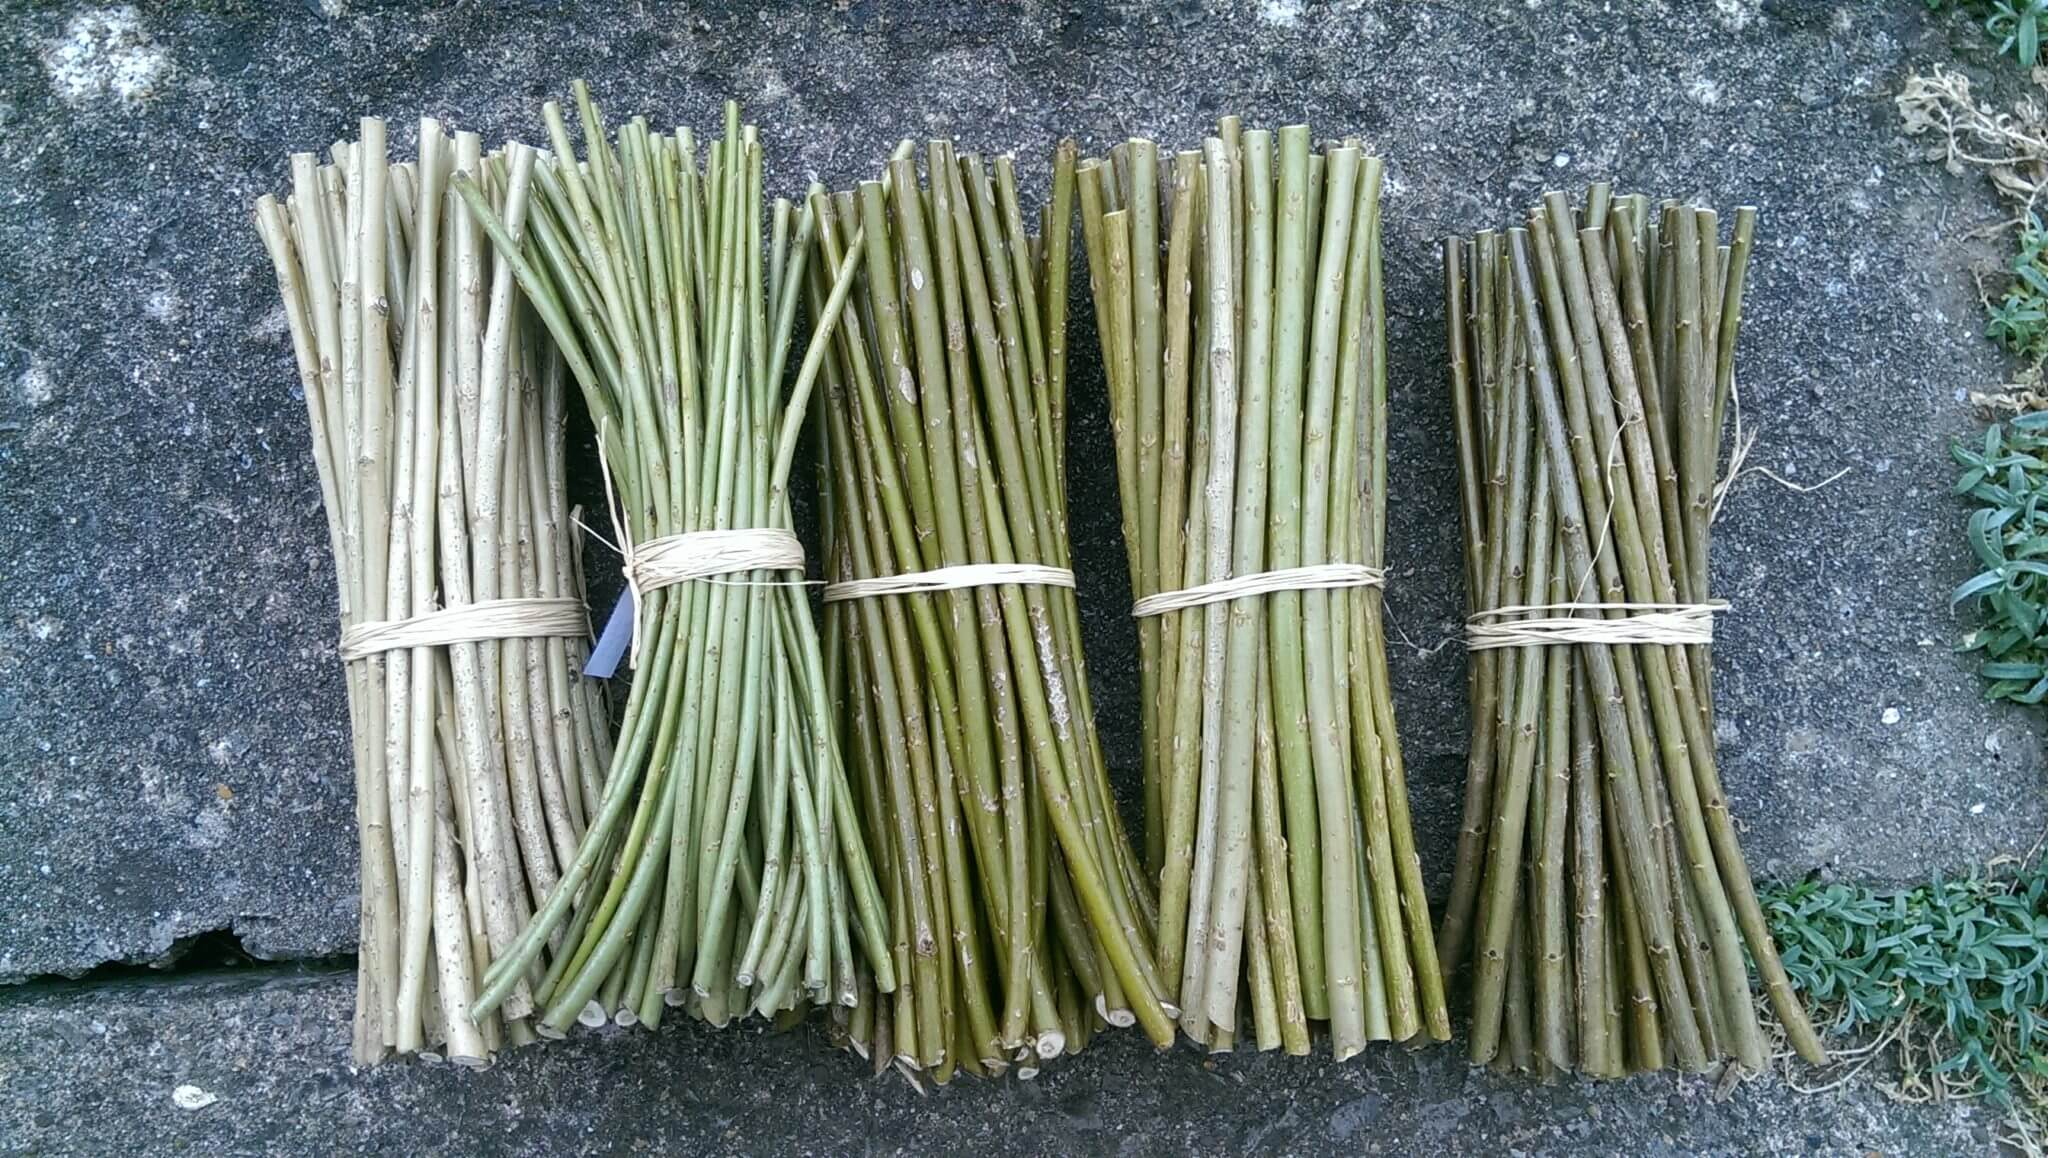 Willow cuttings